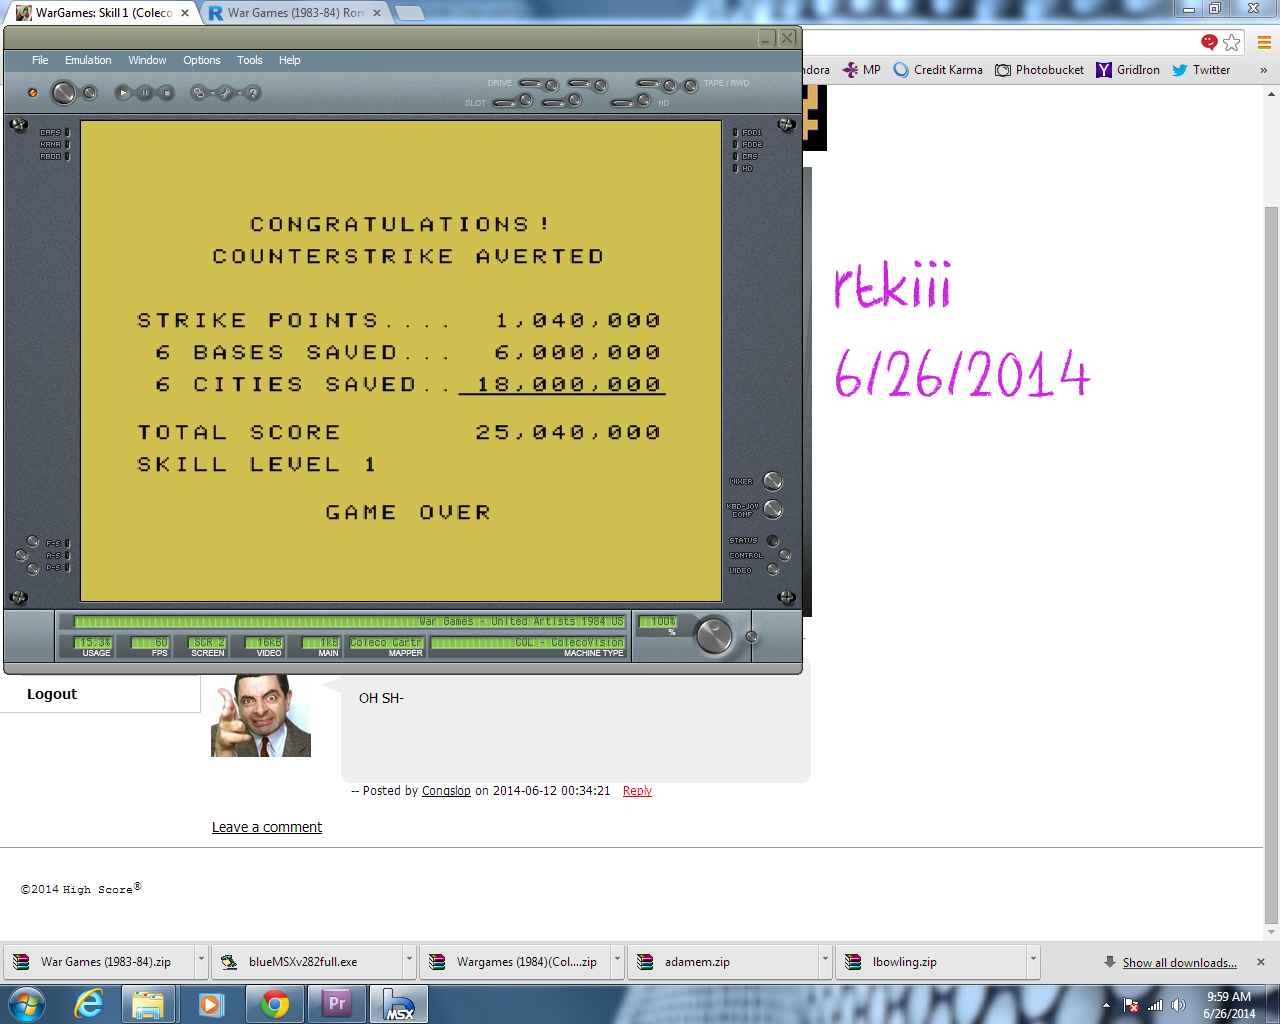 rtkiii: WarGames: Skill 1 (Colecovision Emulated) 25,040,000 points on 2014-06-26 08:55:06